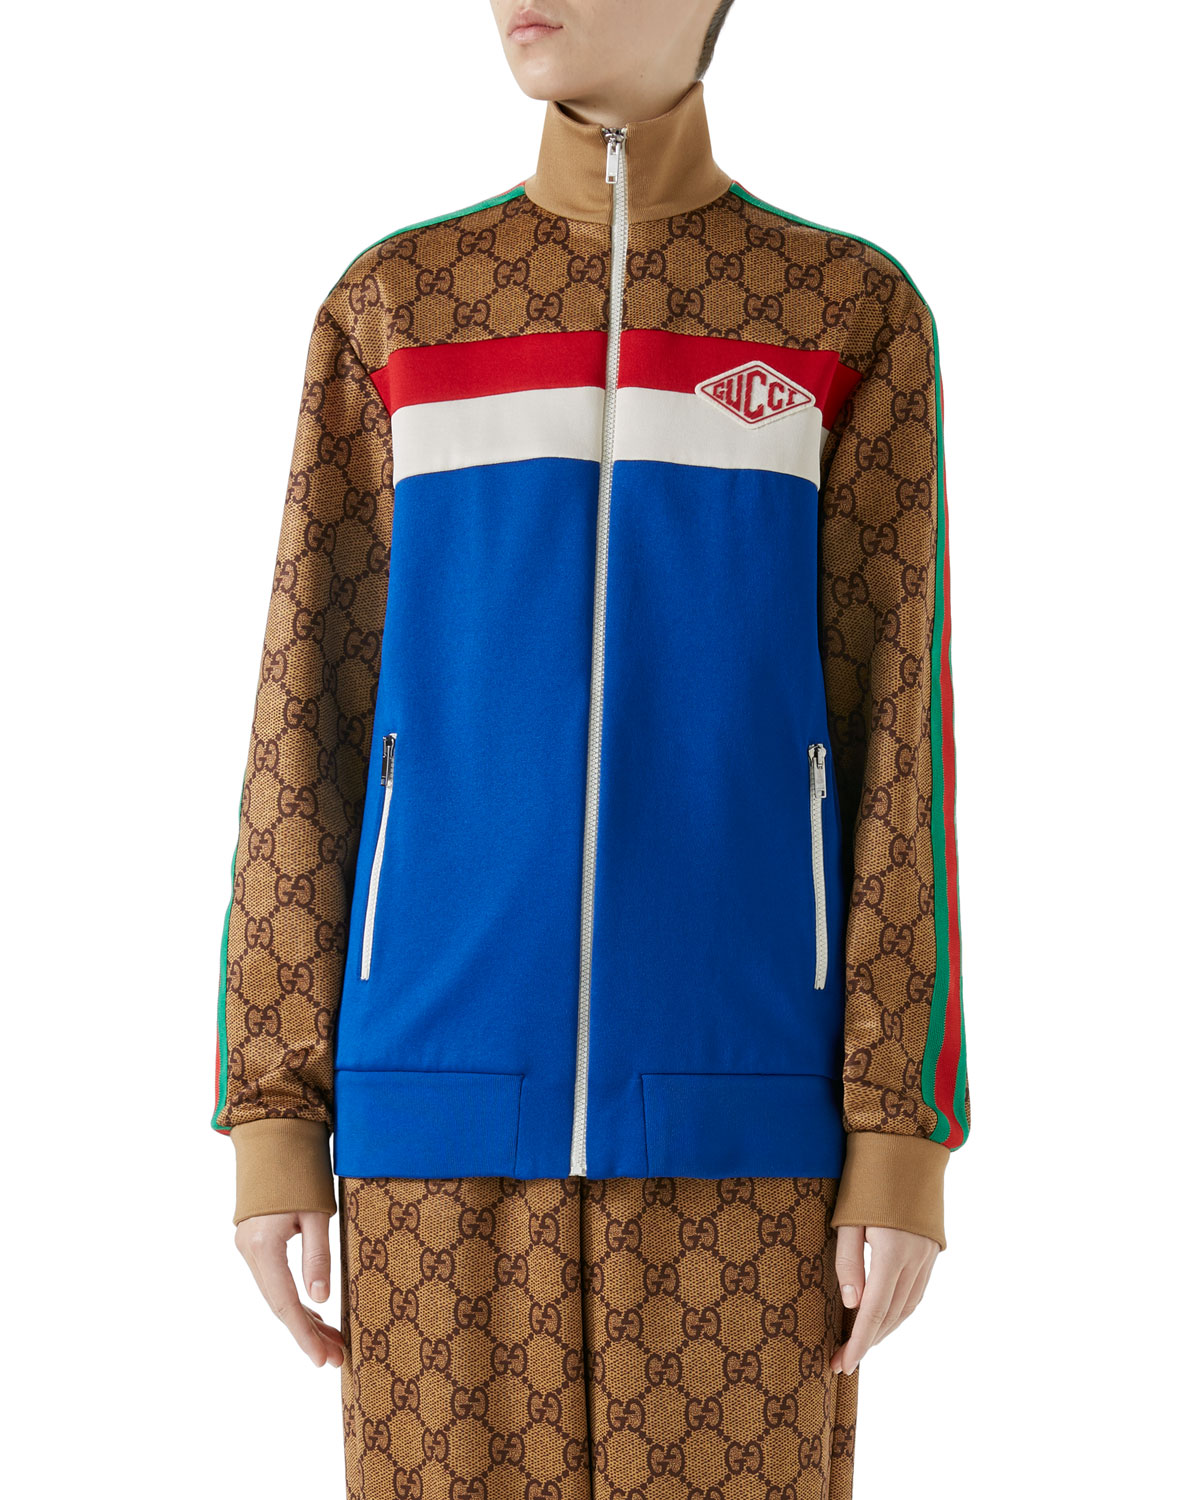 Gucci Gg Technical Zip Up Track Jacket Neiman Marcus